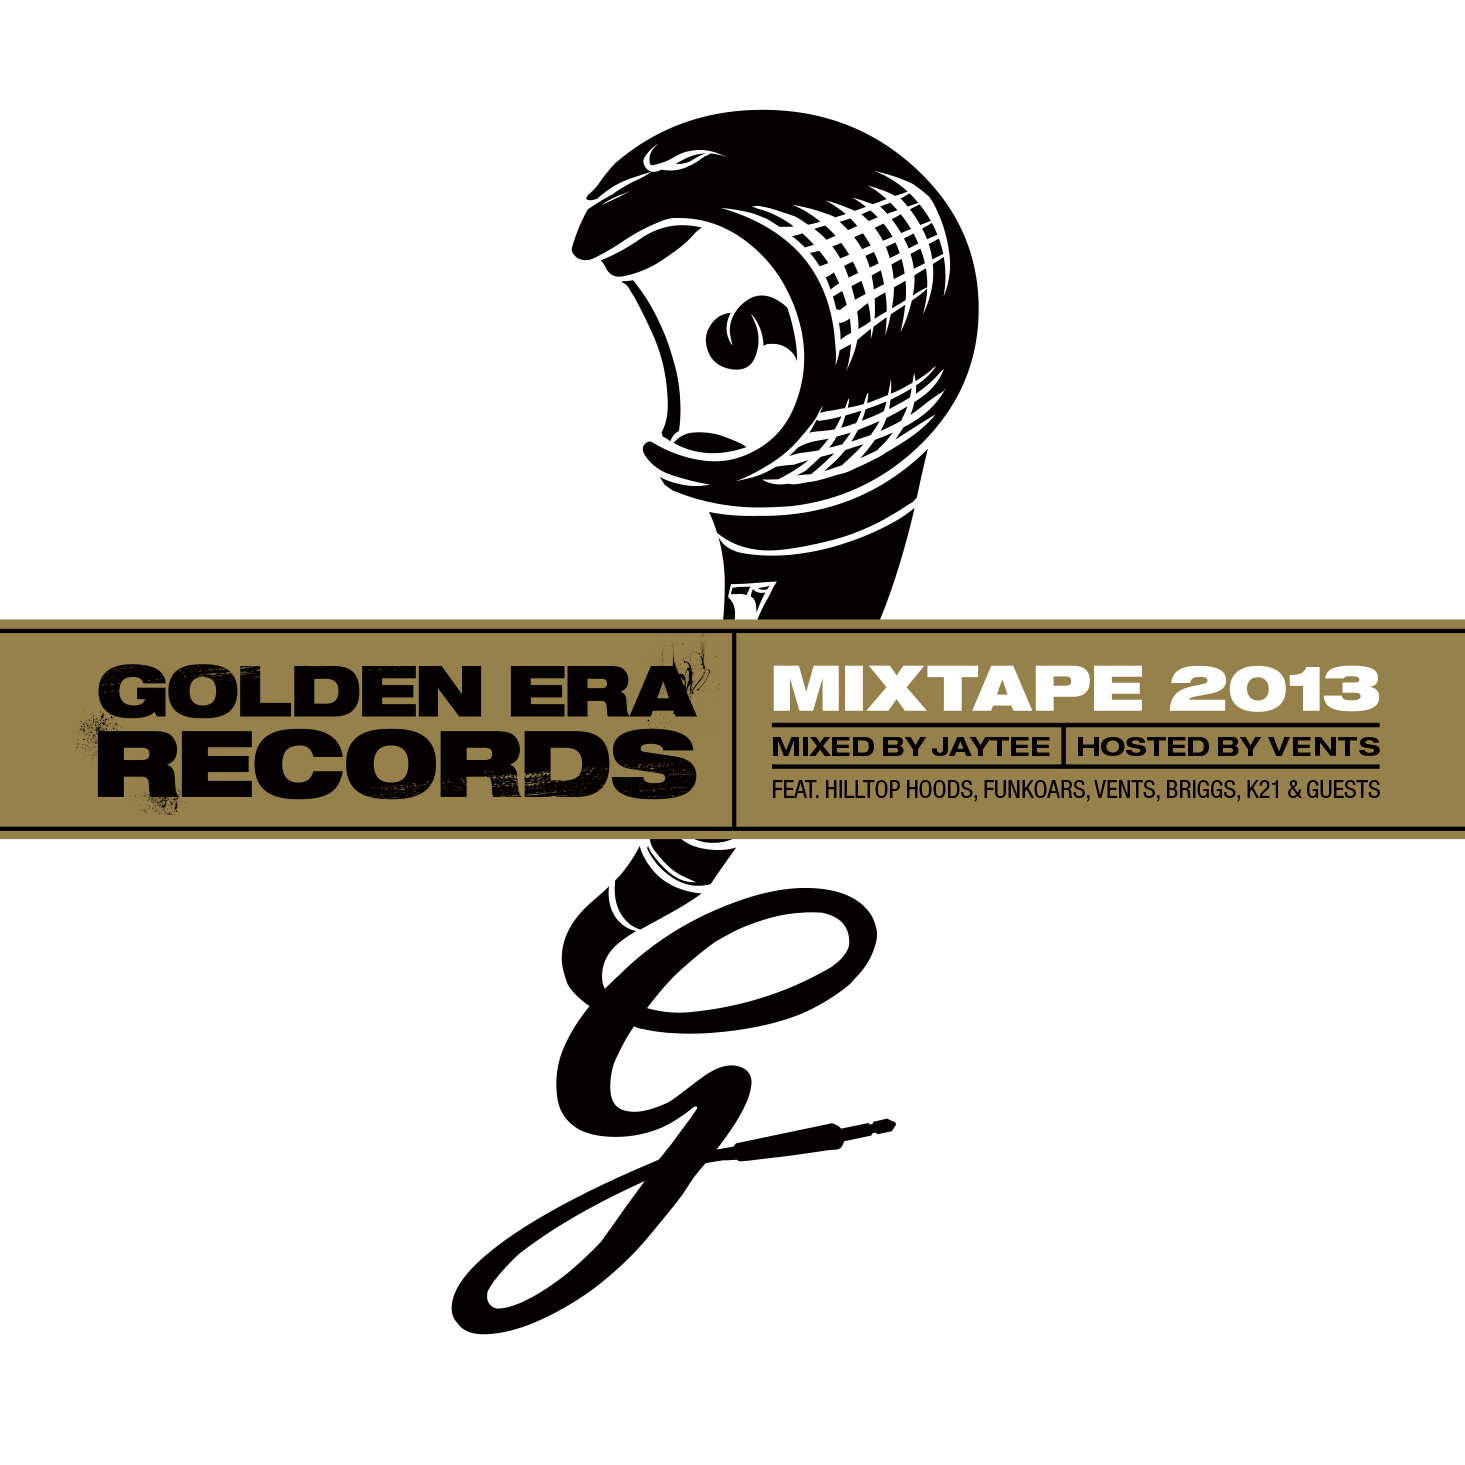 GOLDEN ERA MIXTAPE 2013